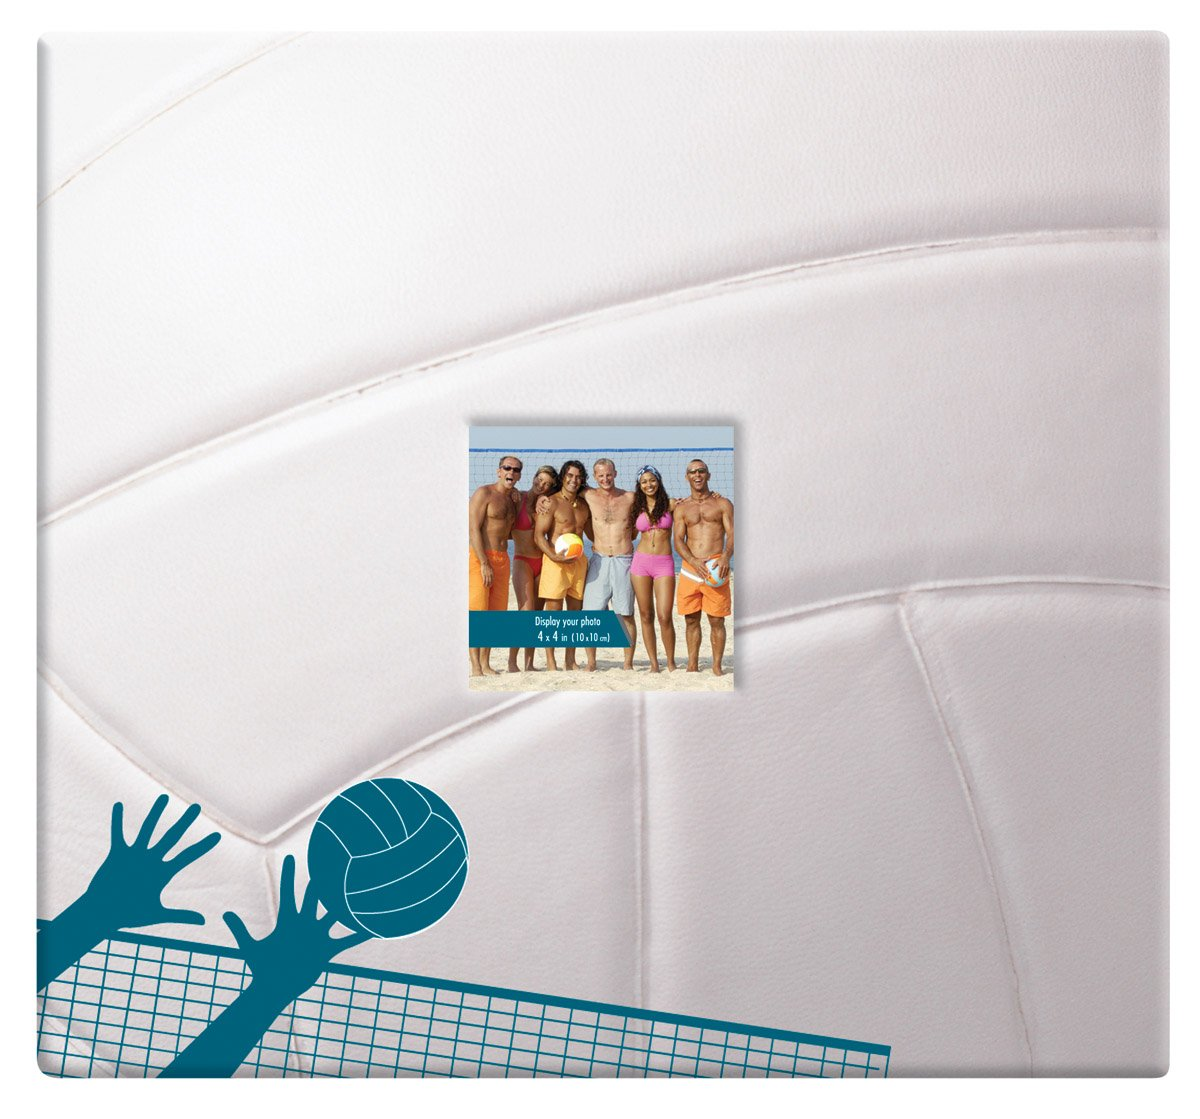 Mbi Sport & Hobby 12 Inch by 12 Inch Postbound Albums, Volleyball (865408) by MCS